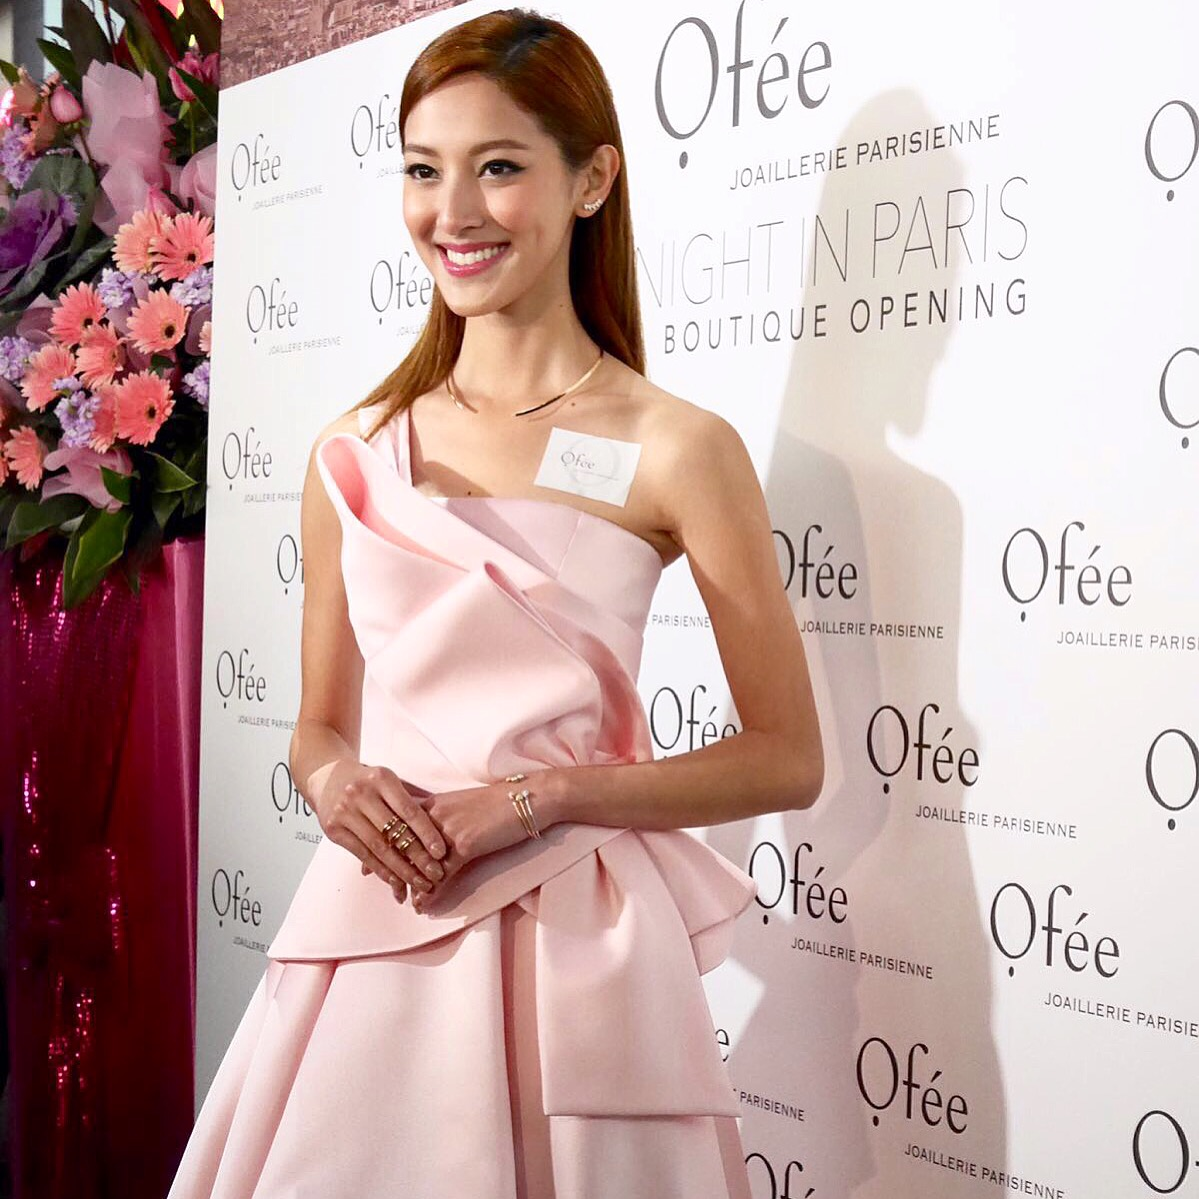 Grace in her custom made satin cocktail dress in Pink at the Ofee Jewellery boutique grand opening event